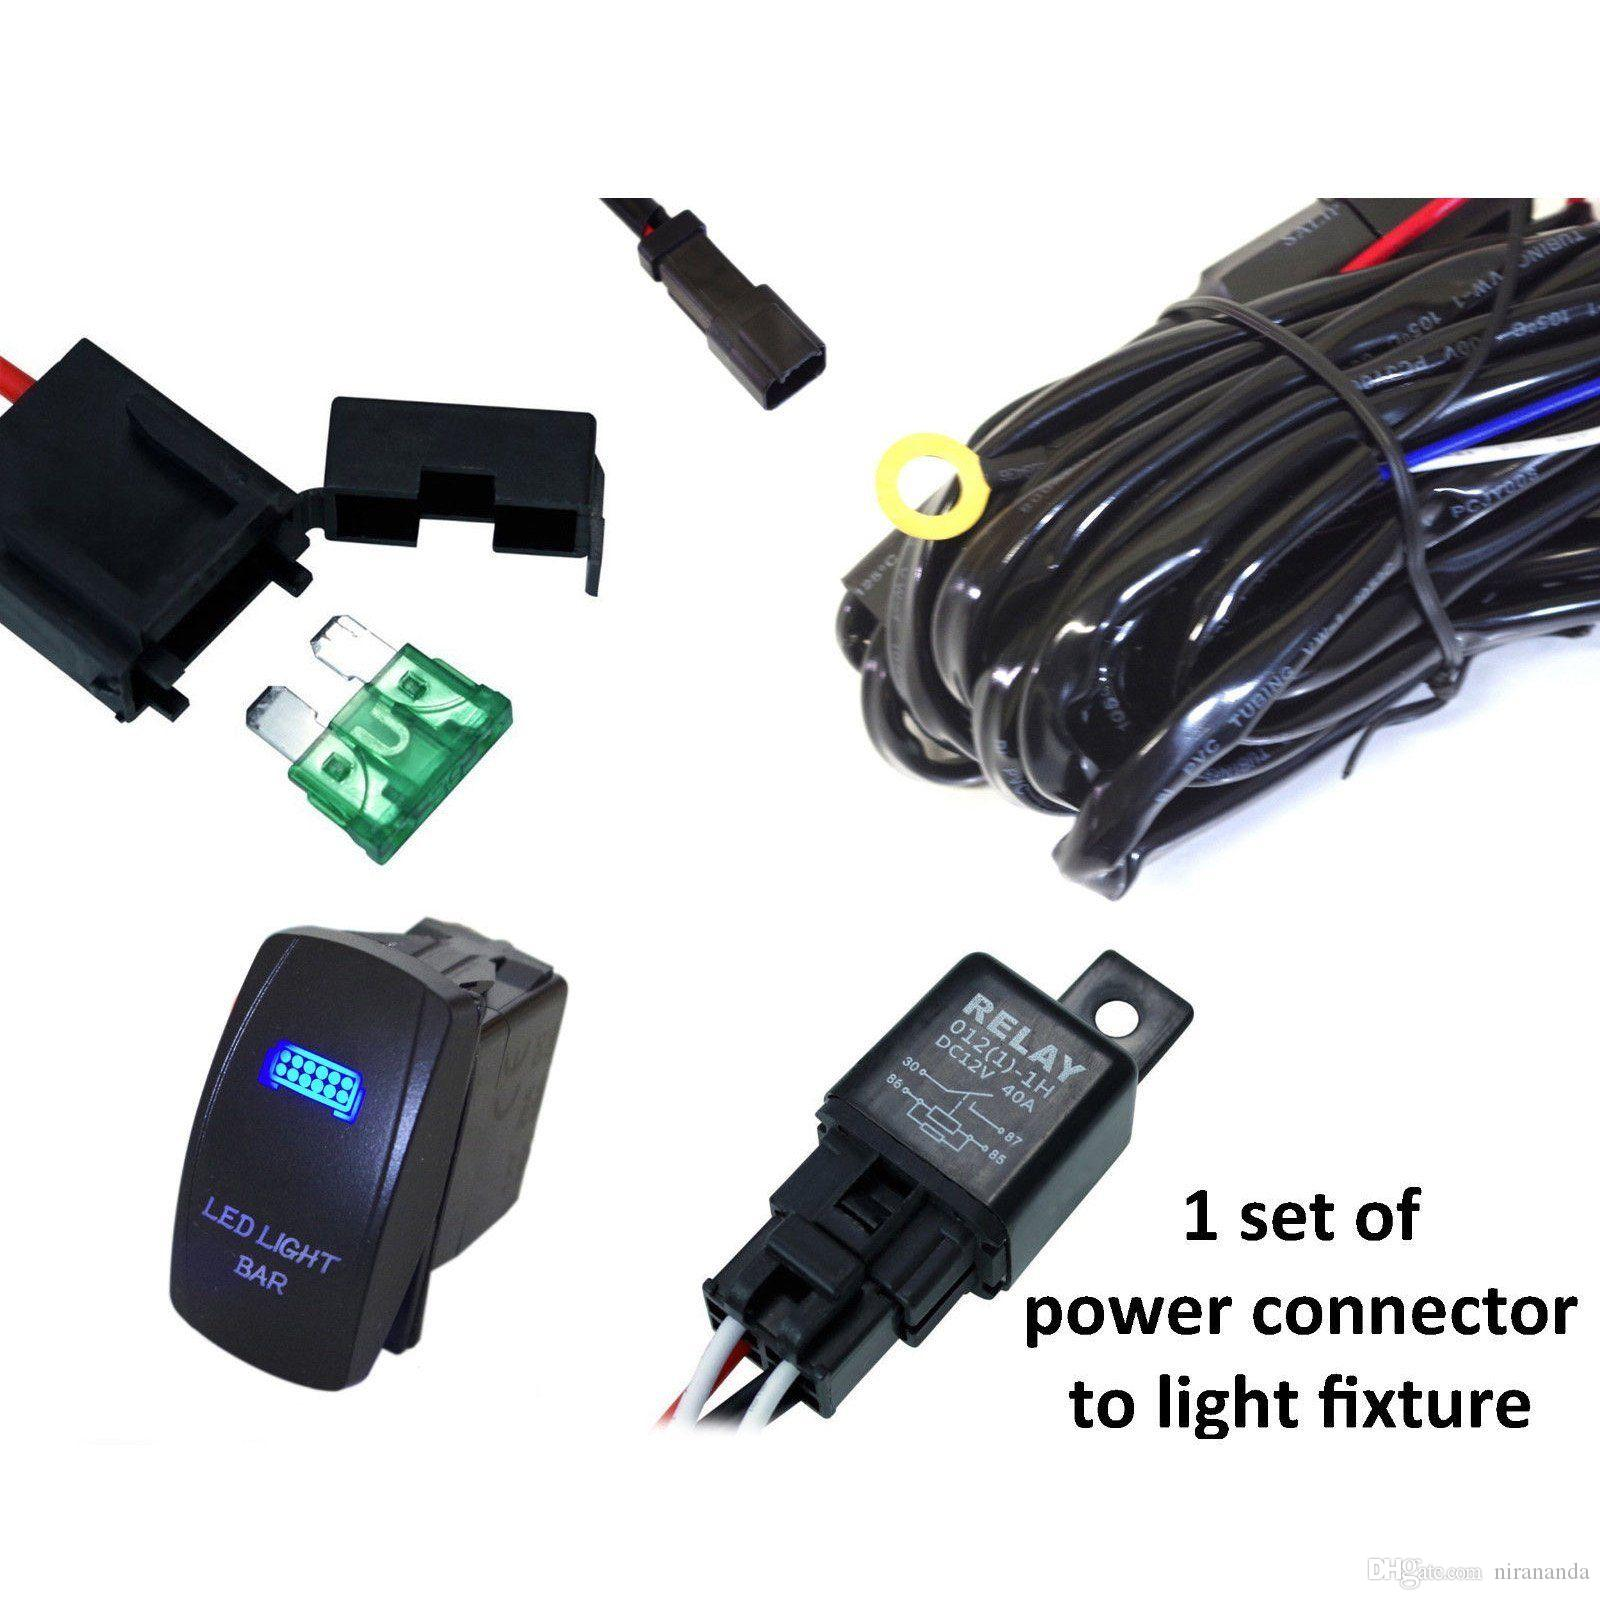 Discount 40a Wiring Harness Kit With 20a Led Light Bar Laser Rocker 2 Sets Of Power Connectors To Fixtures